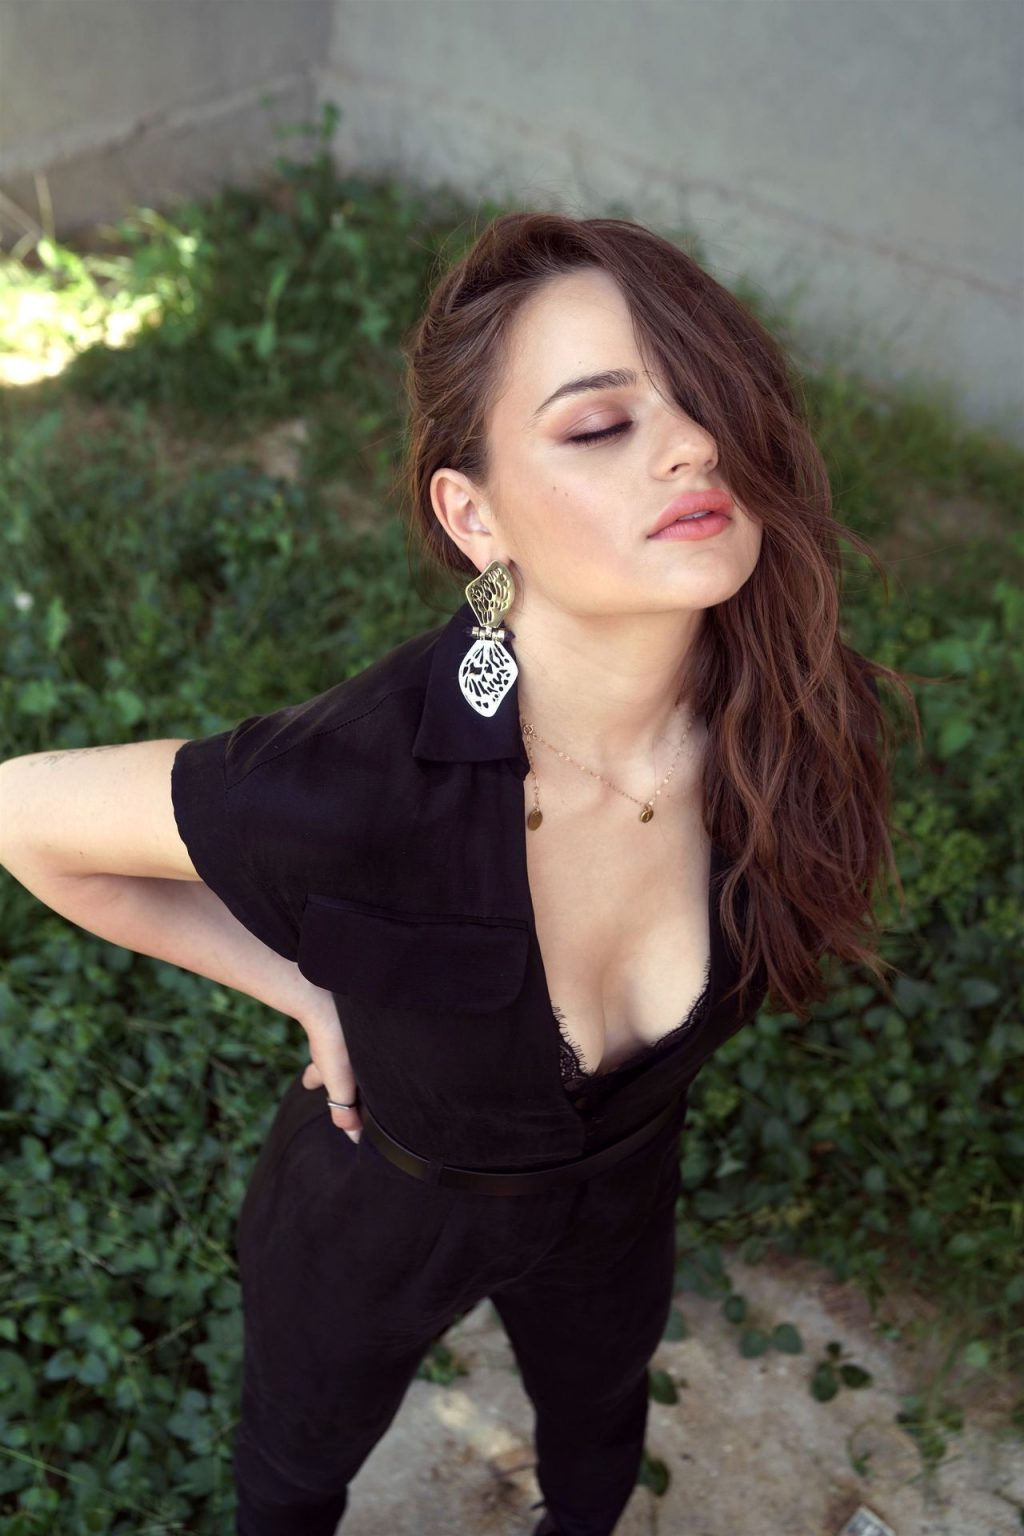 Joey King Shows Off Her Tits For Kelly Clarkson Show (10 Photos)